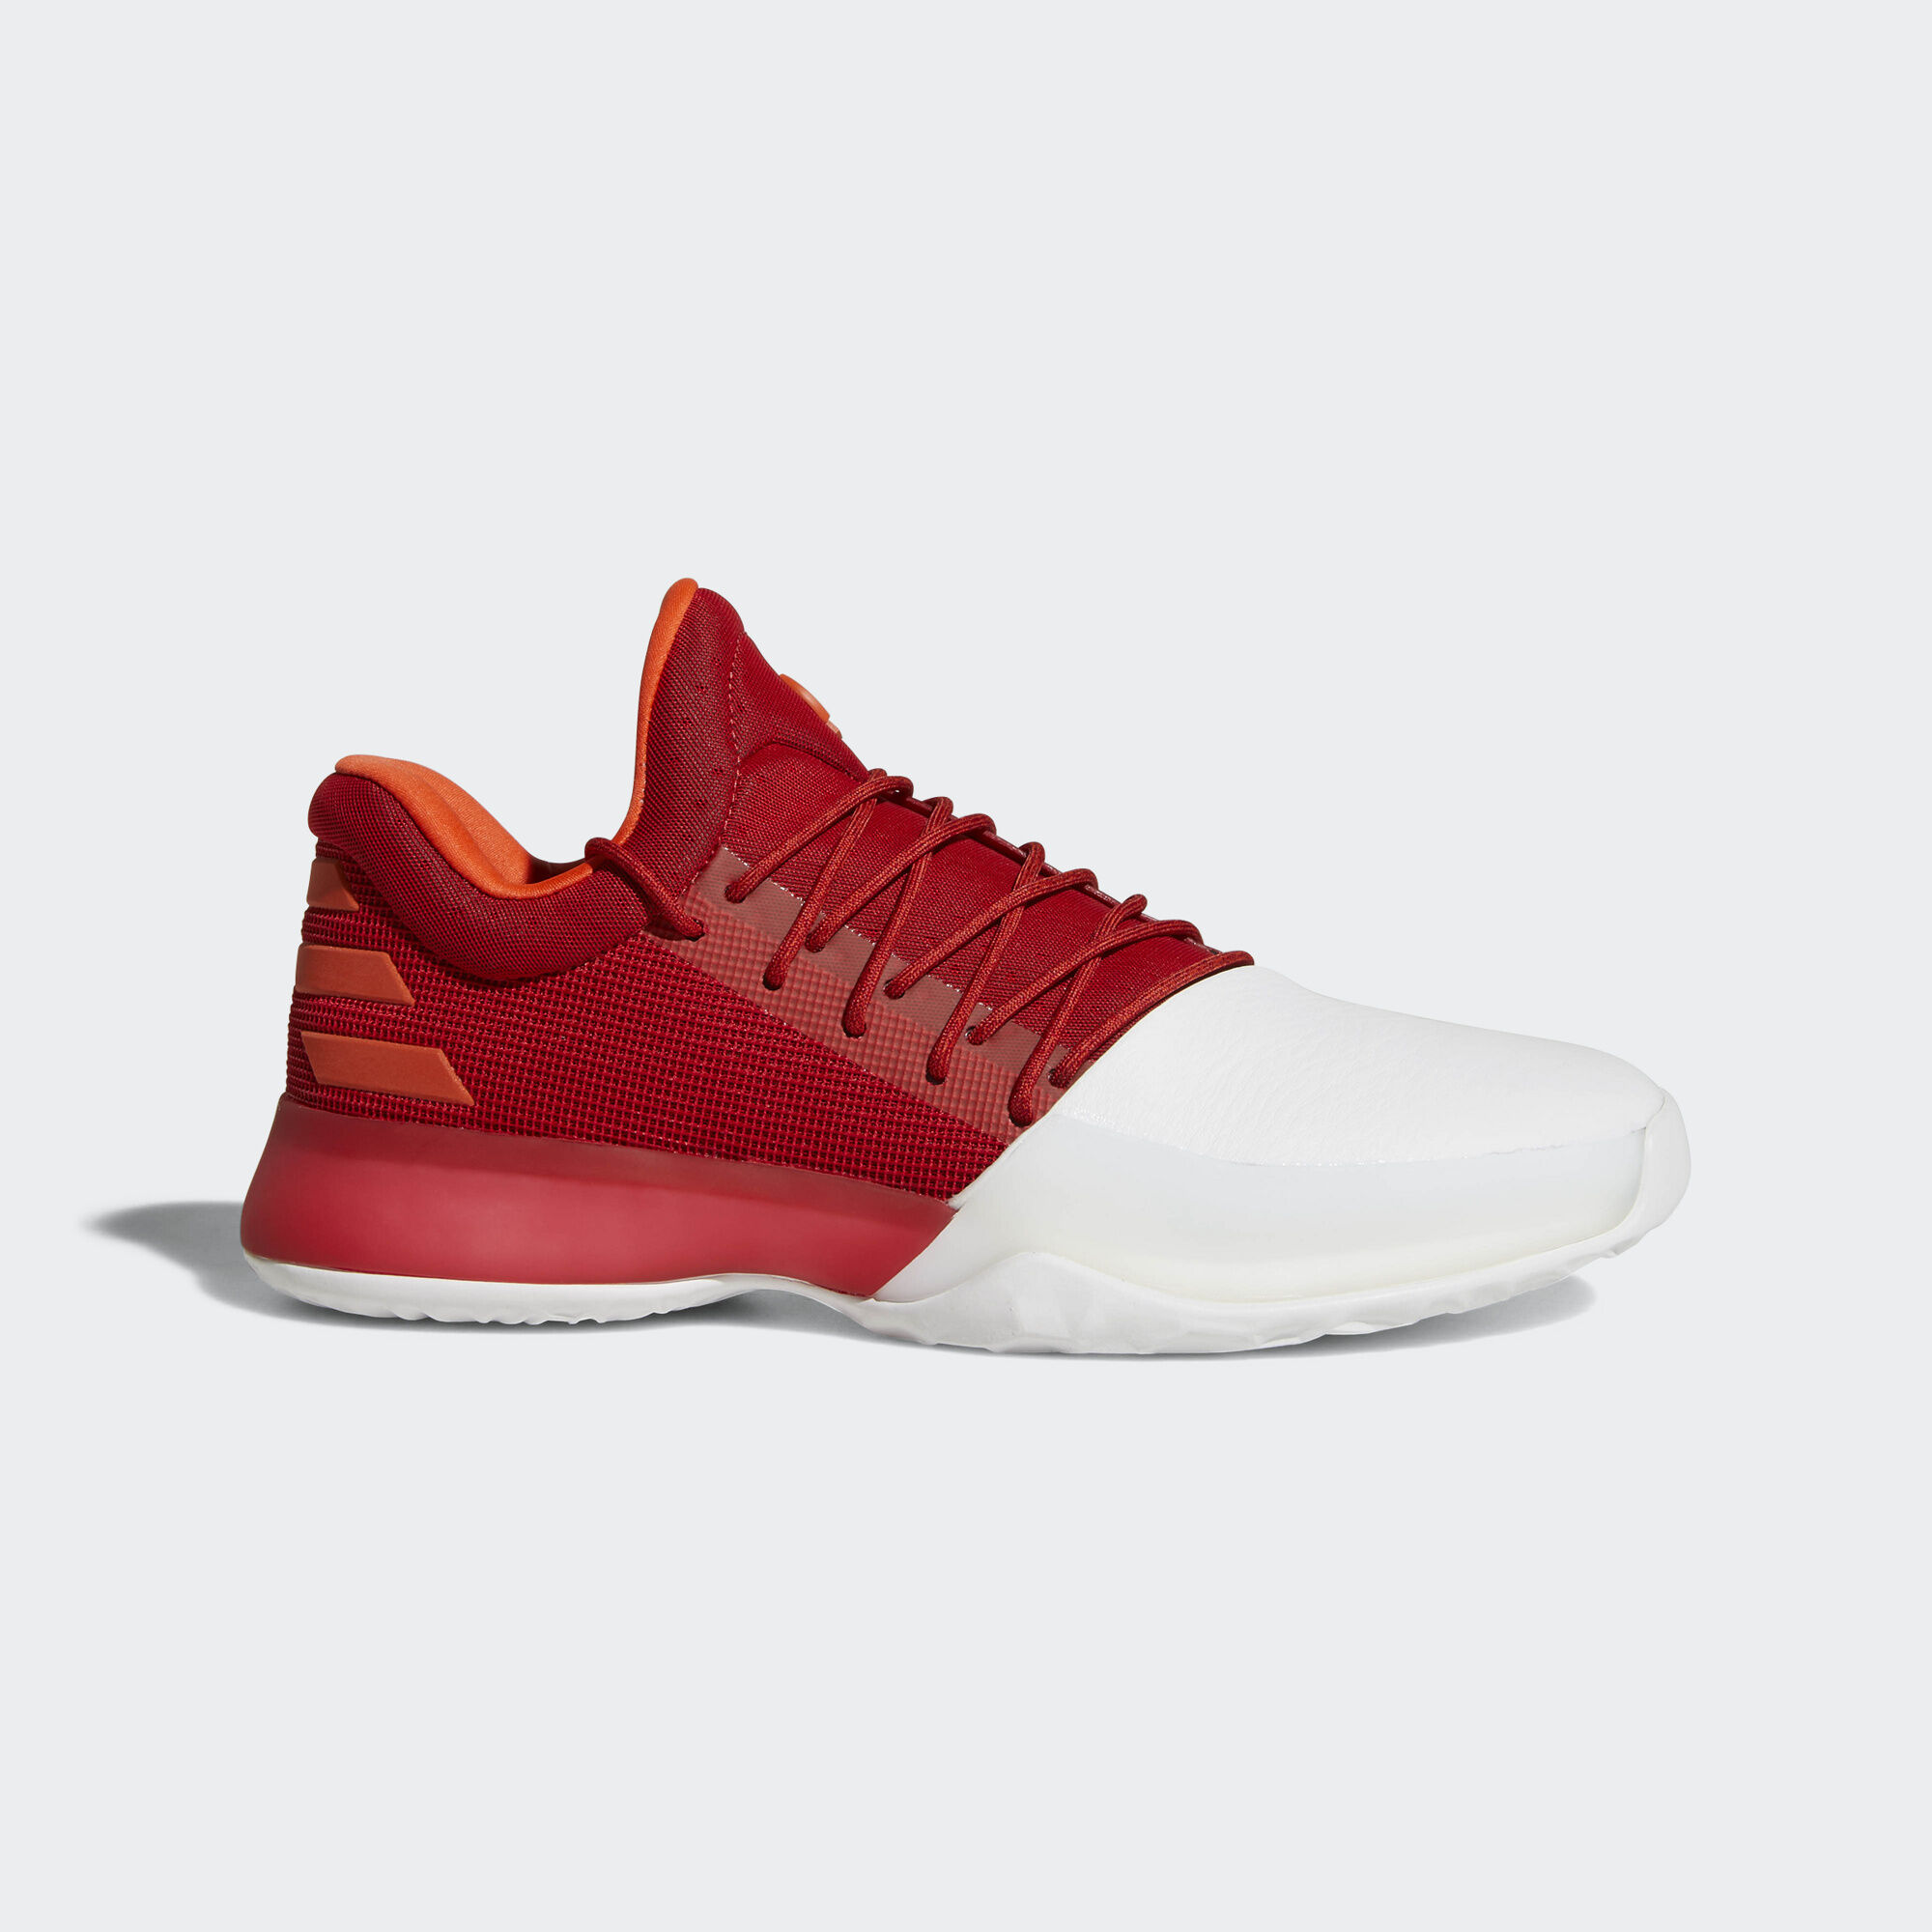 adidas basketball shoes white red